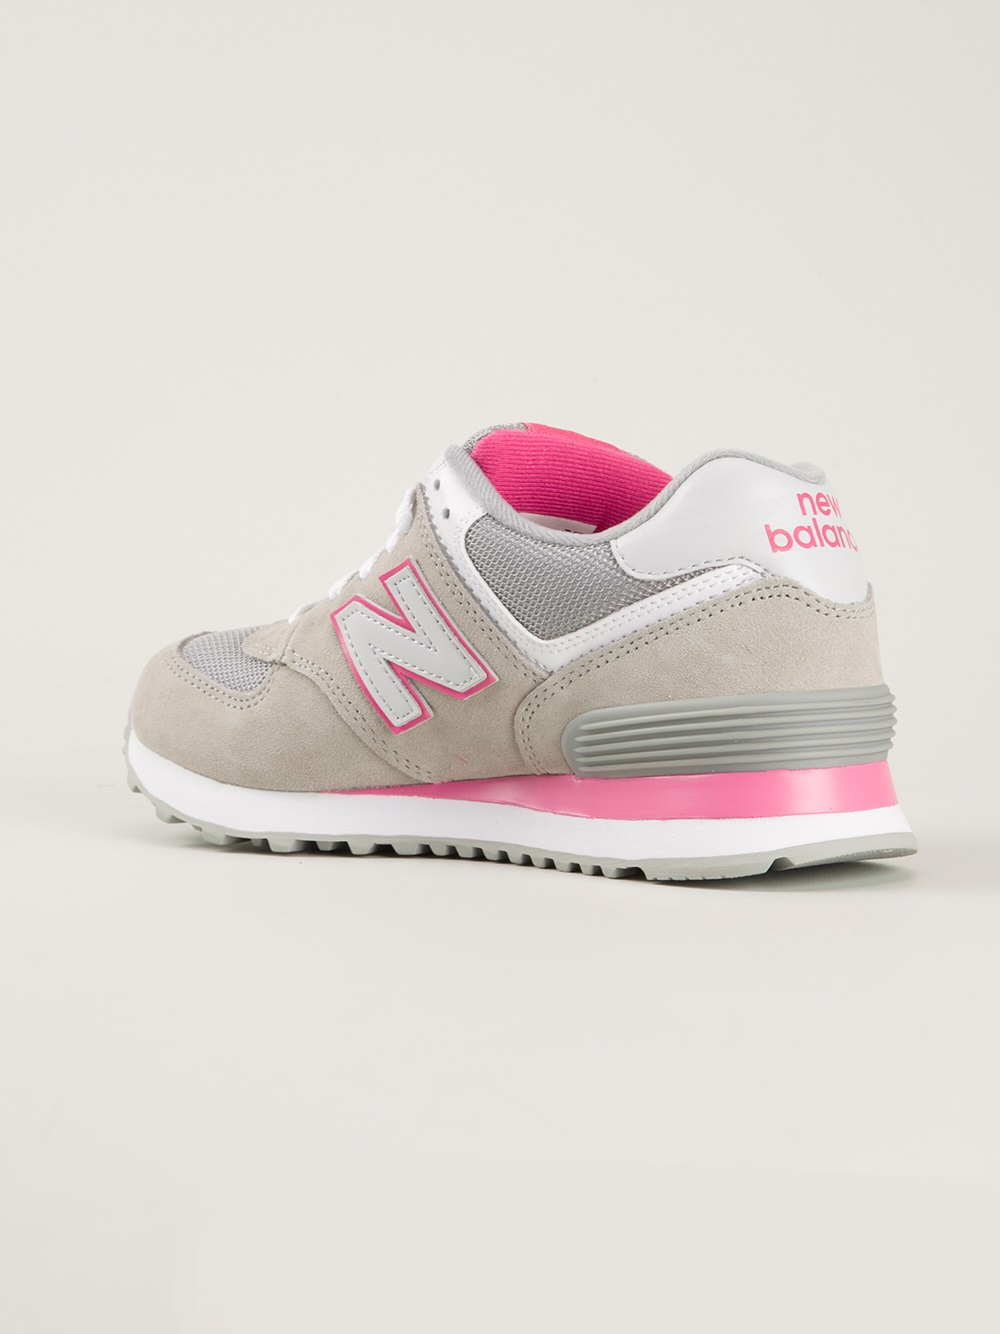 lyst new balance wl 574 exp trainers in pink. Black Bedroom Furniture Sets. Home Design Ideas